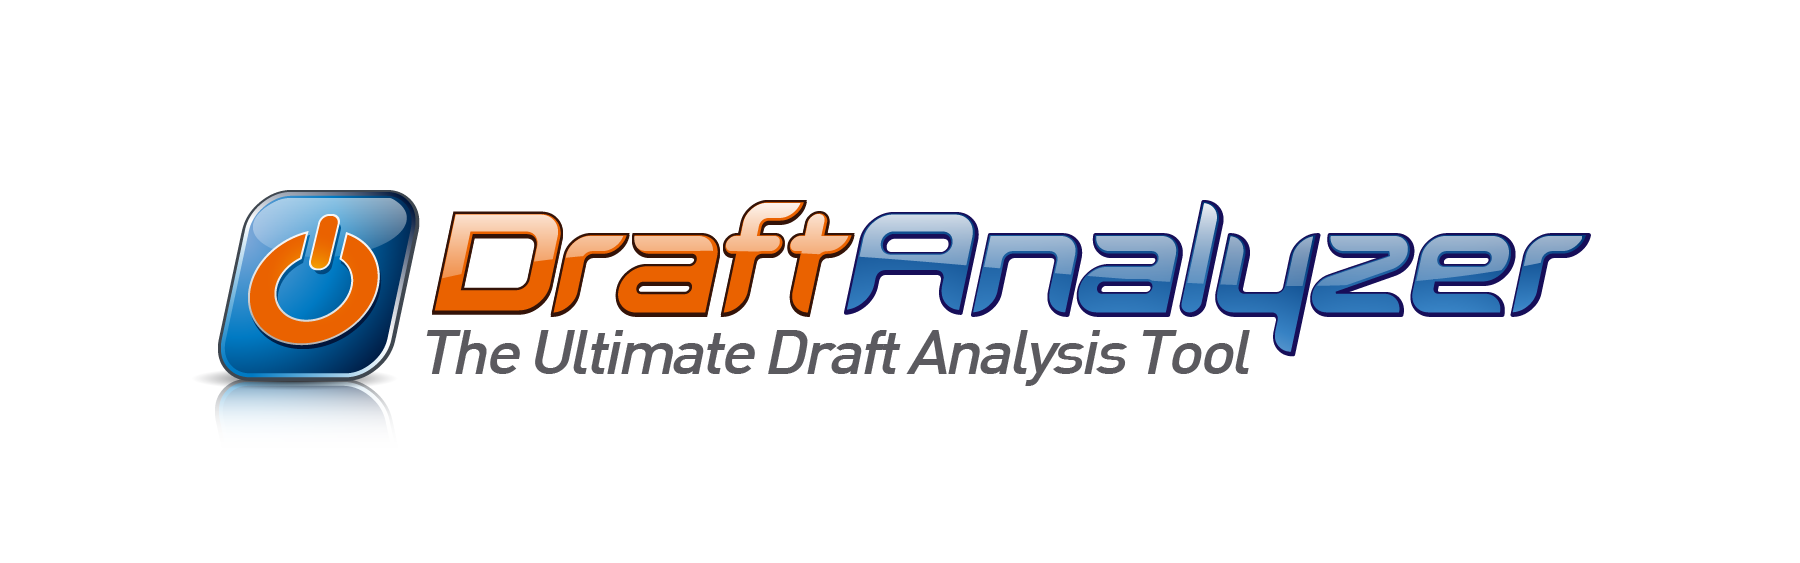 Draft Analyzer